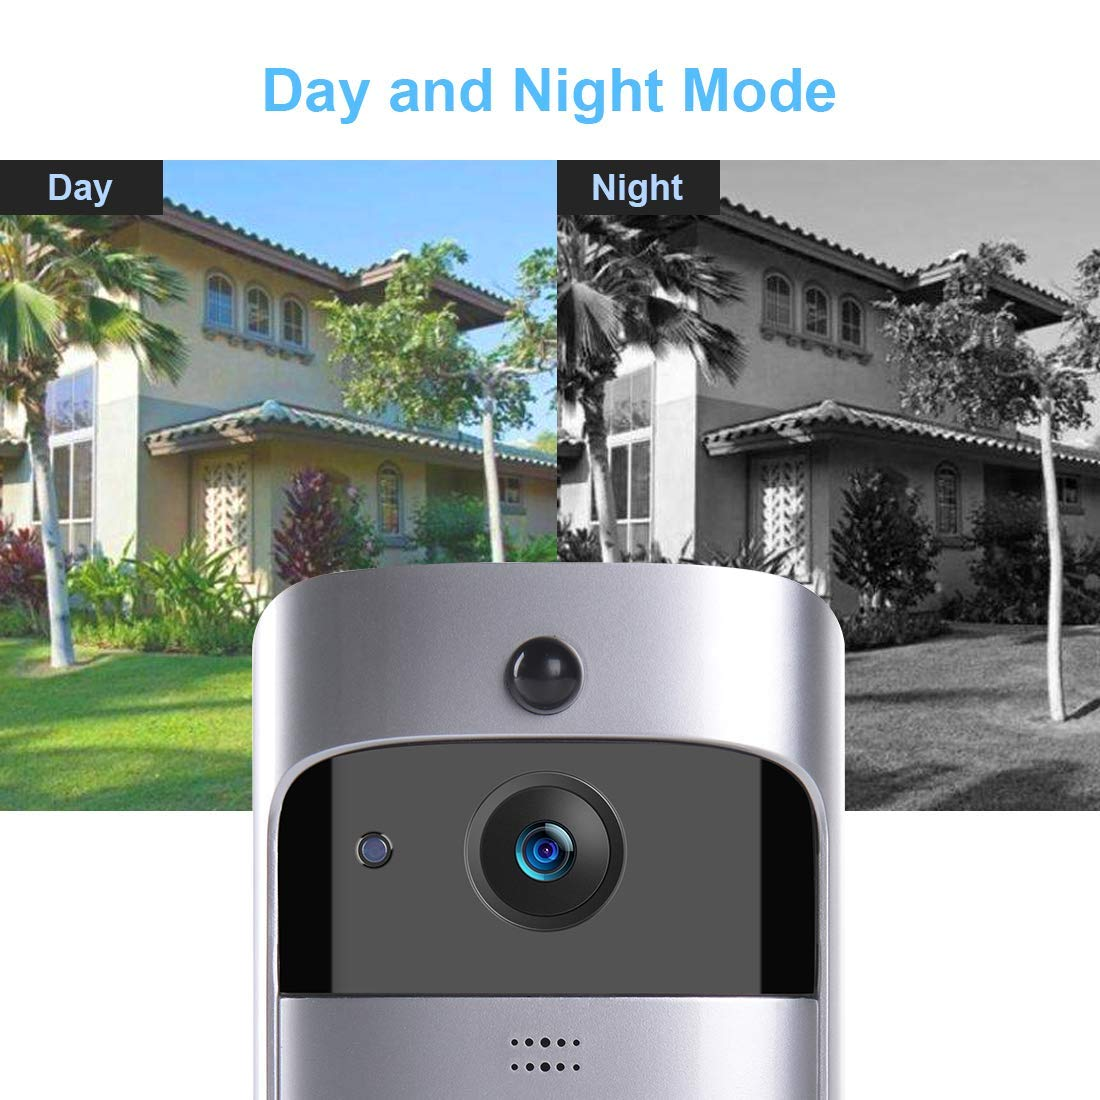 BENEVE Smart Wifi Video Ring Doorbell, 720P HD Security Camera with Free 8G  Storage, Real-Time Two-Way Talk/Video, Night Vision, PIR Motion Detection